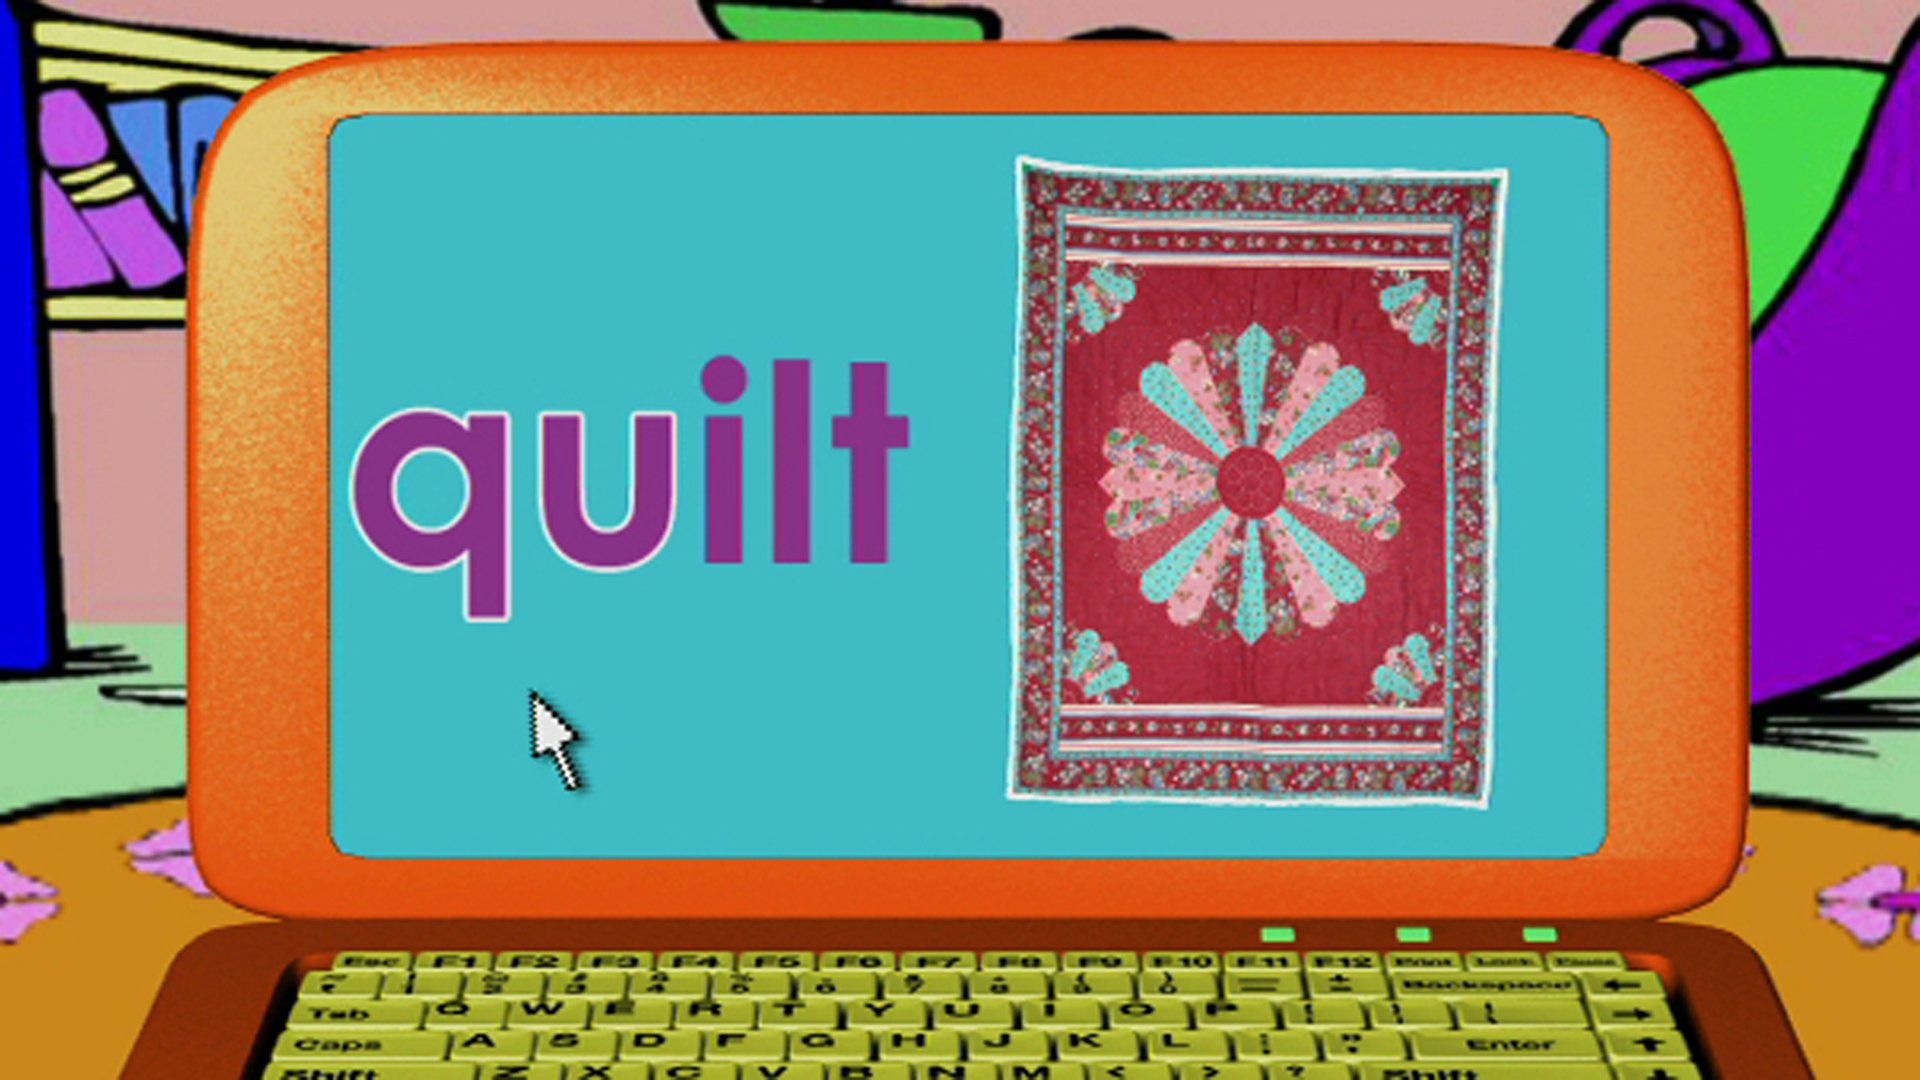 Watch Word Morph: quarter-quail-quill-quilt